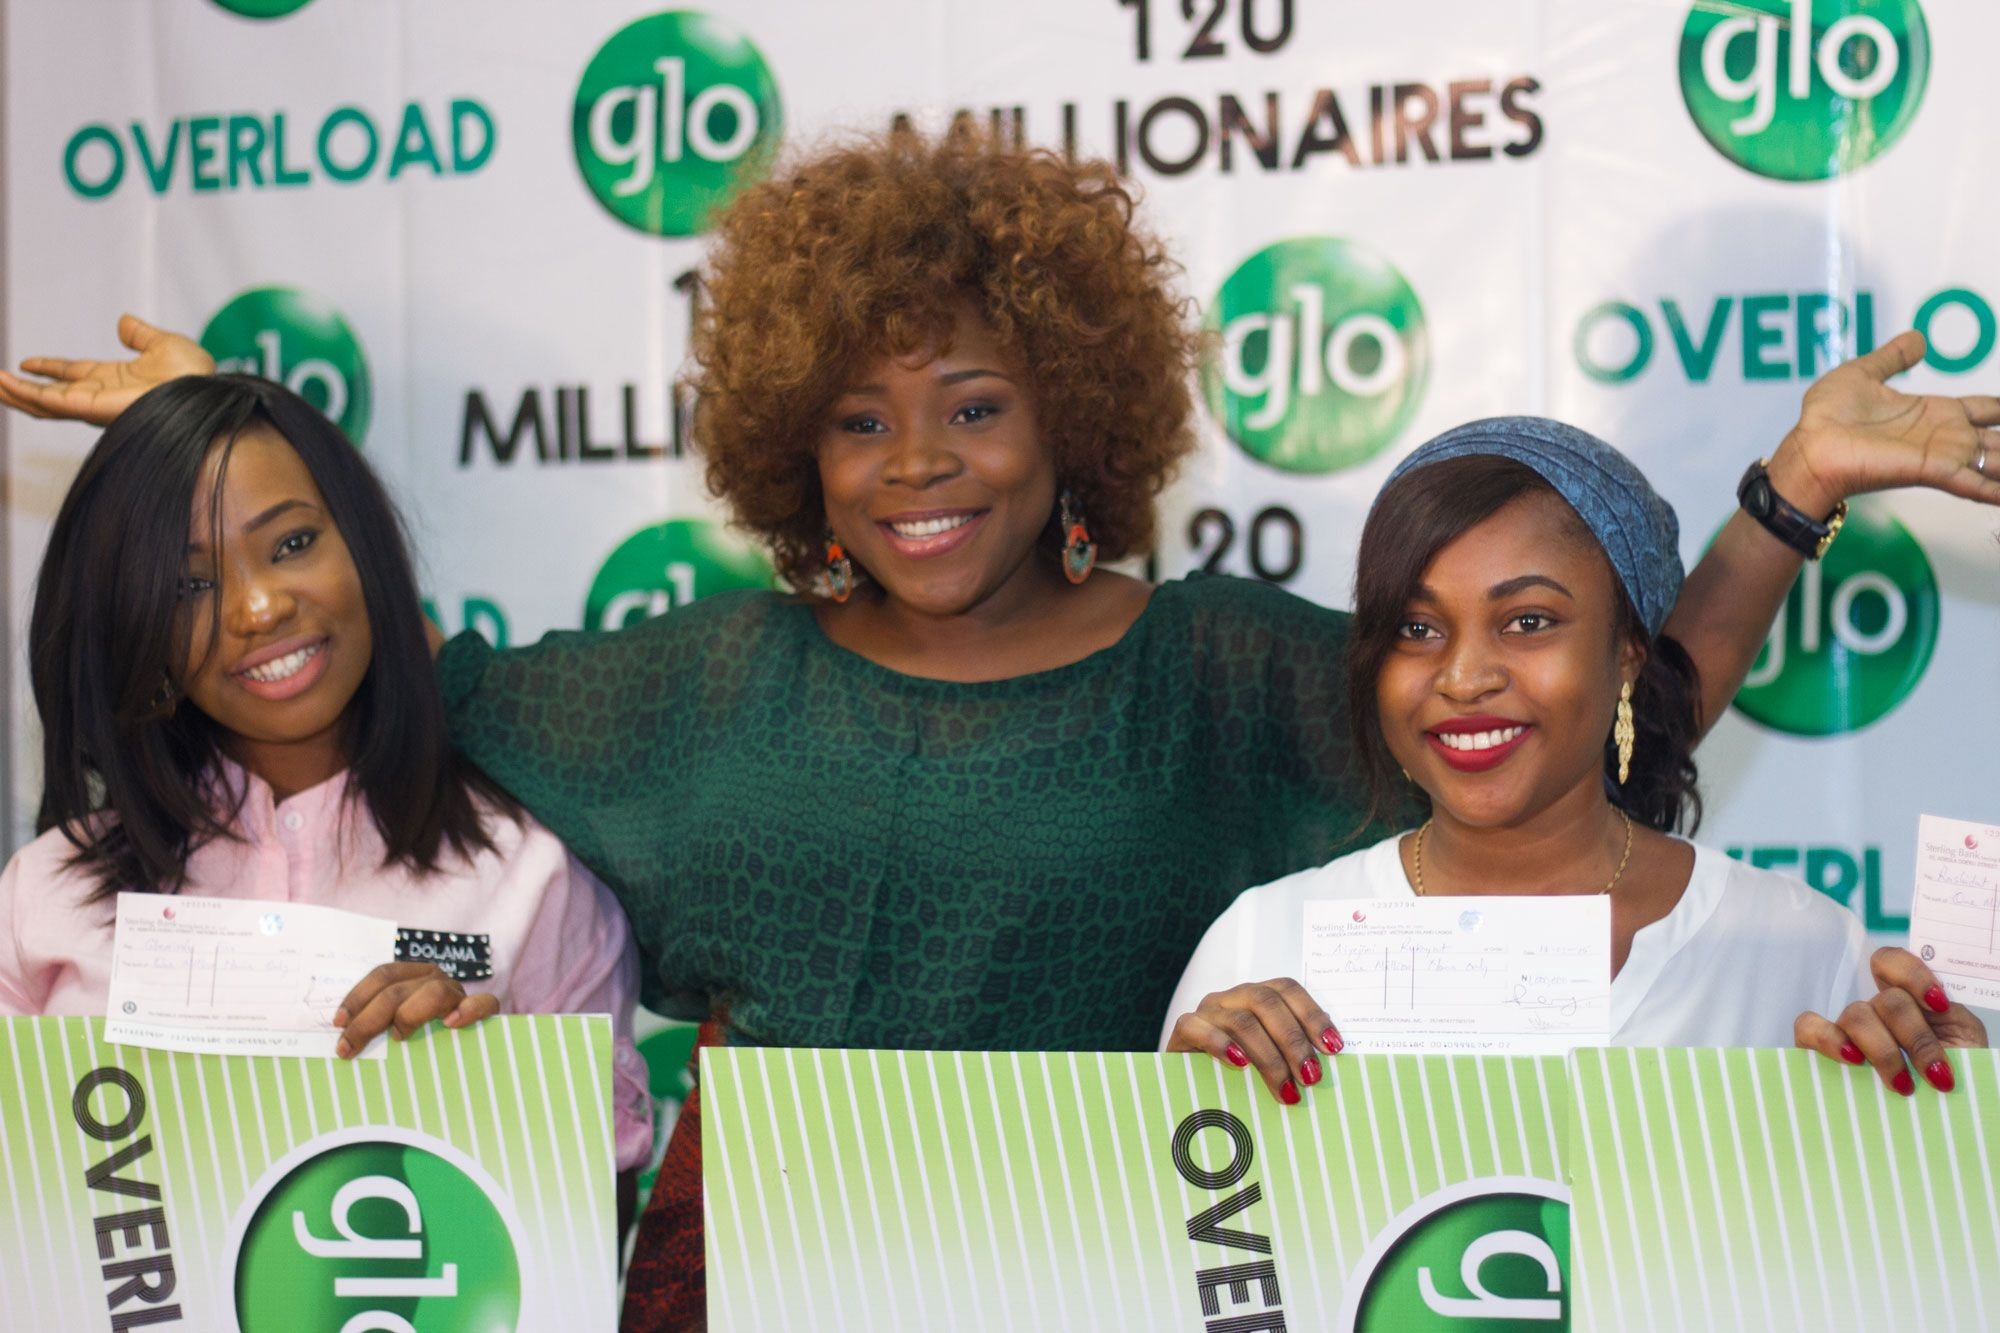 Globacom: How 20 millionaires emerged in Overloaded promo